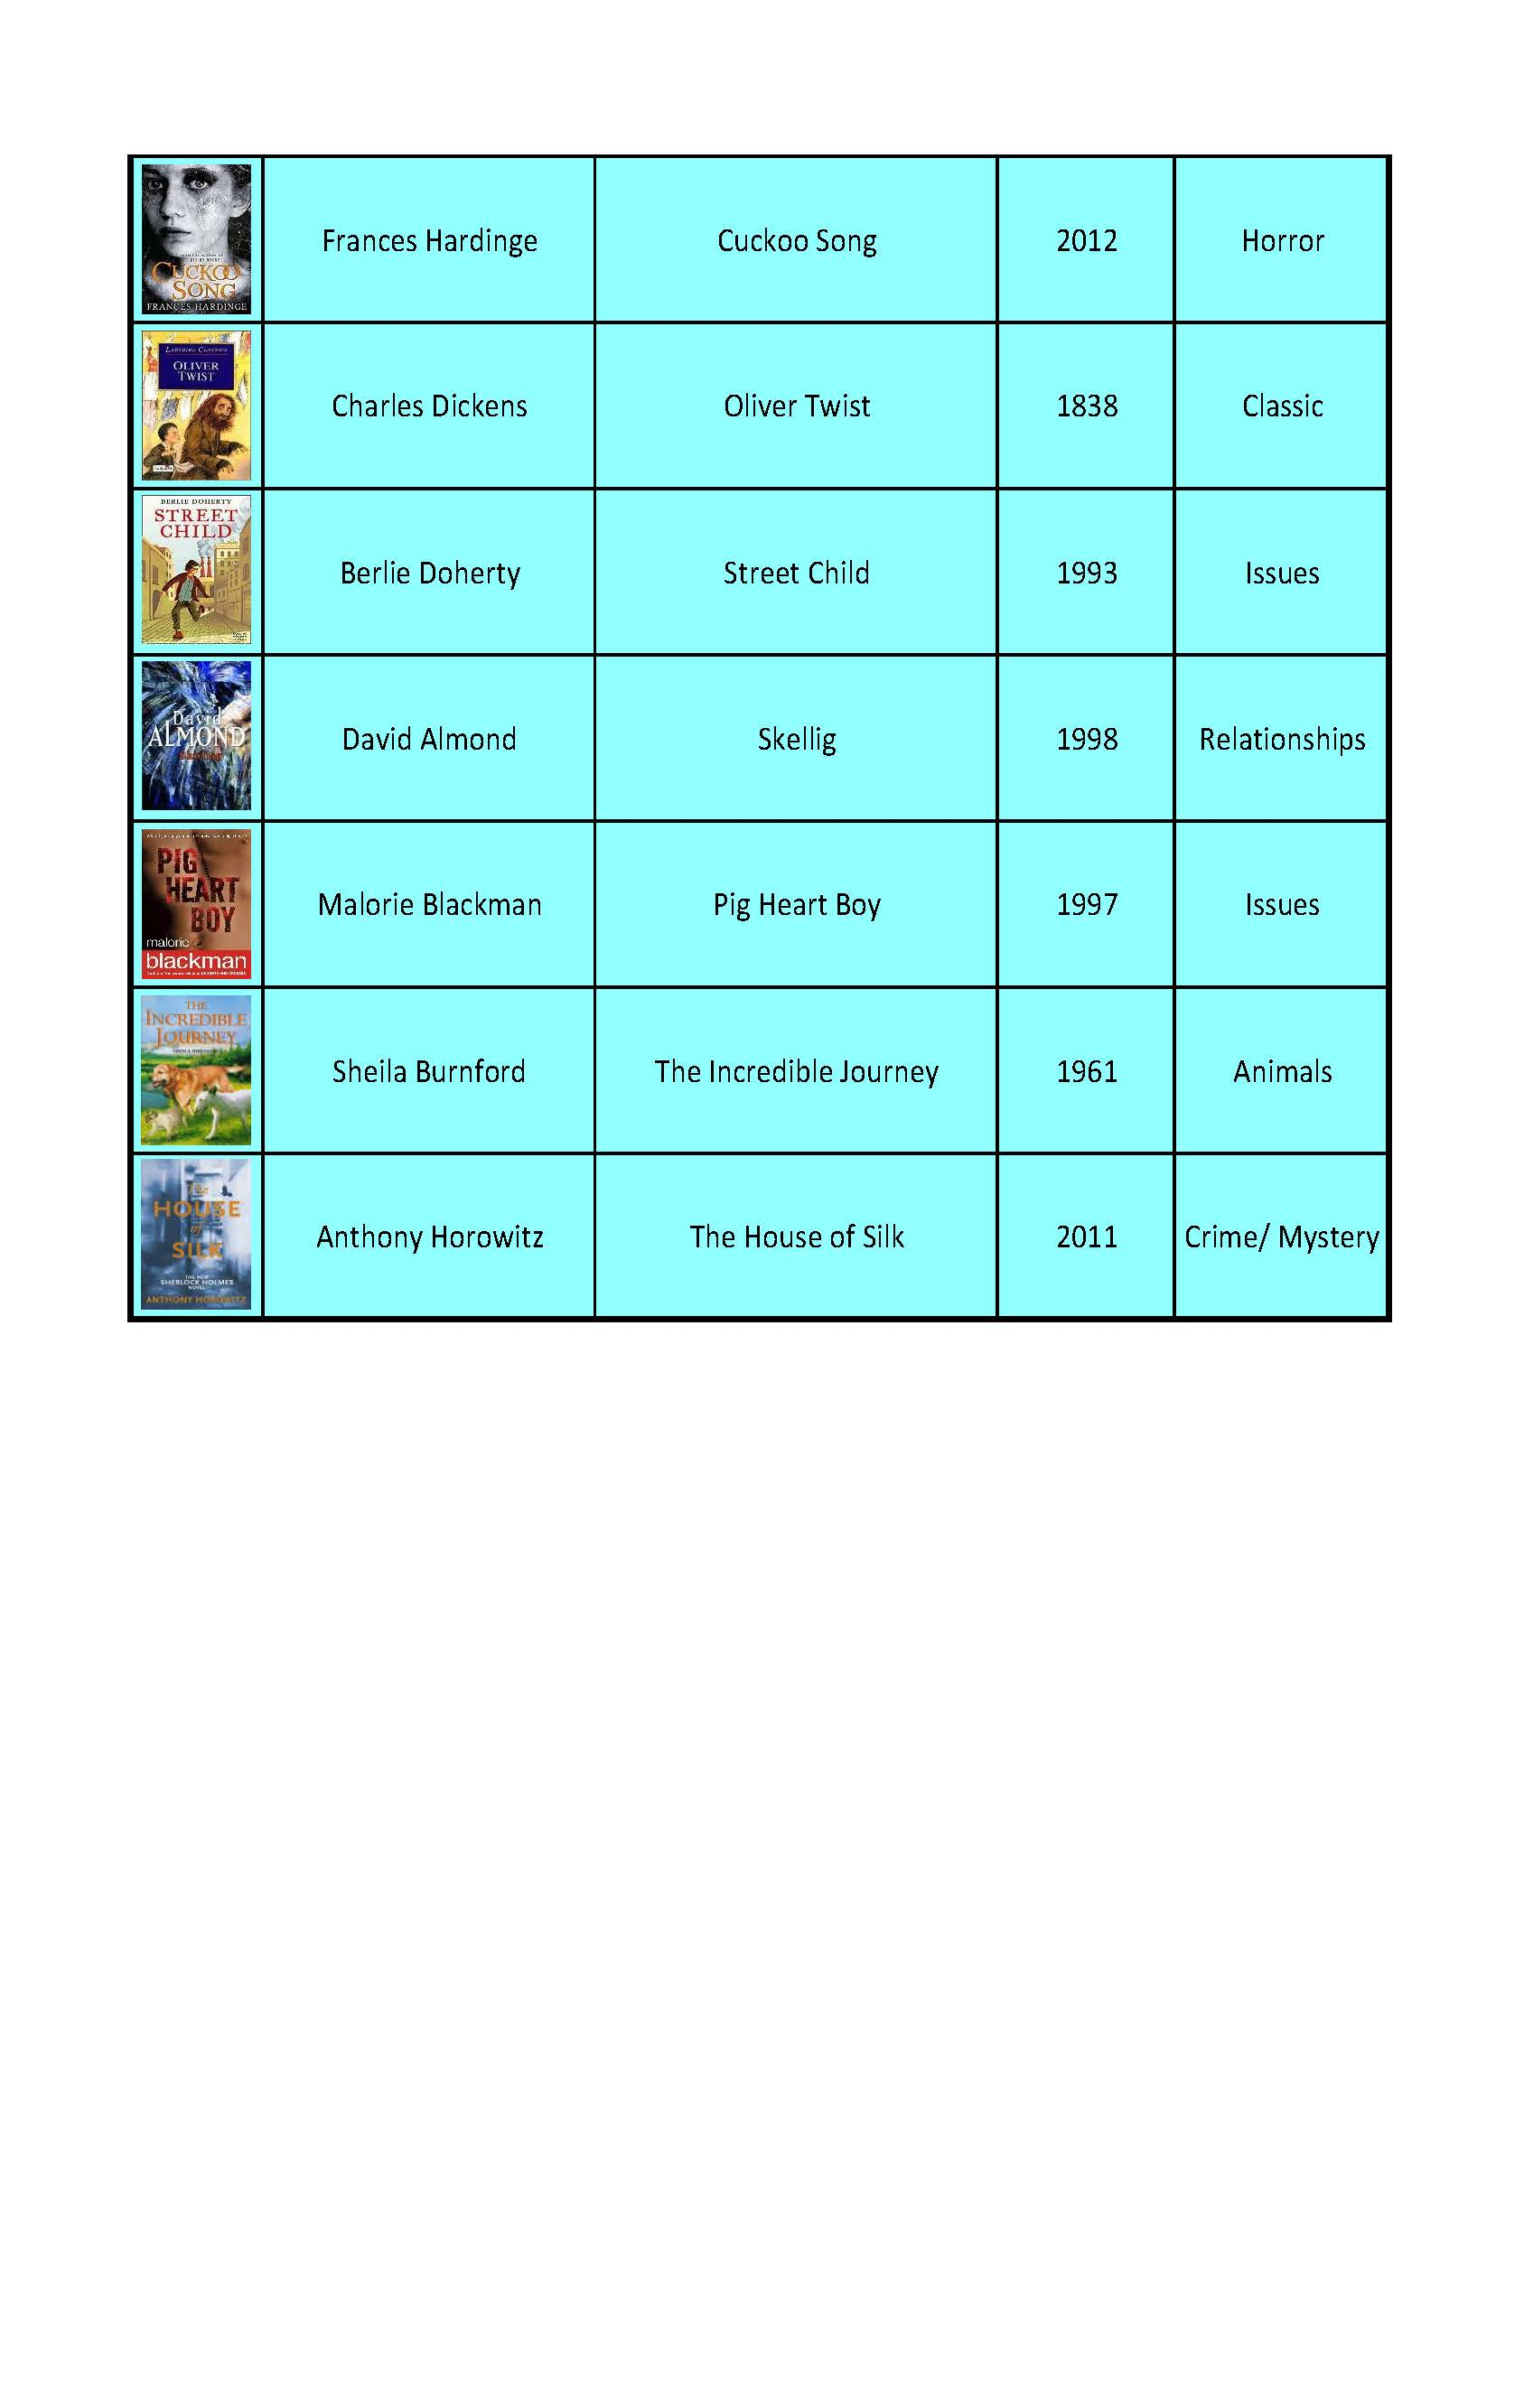 Priory Plus Reading List with Images KS3_Page_4.jpg